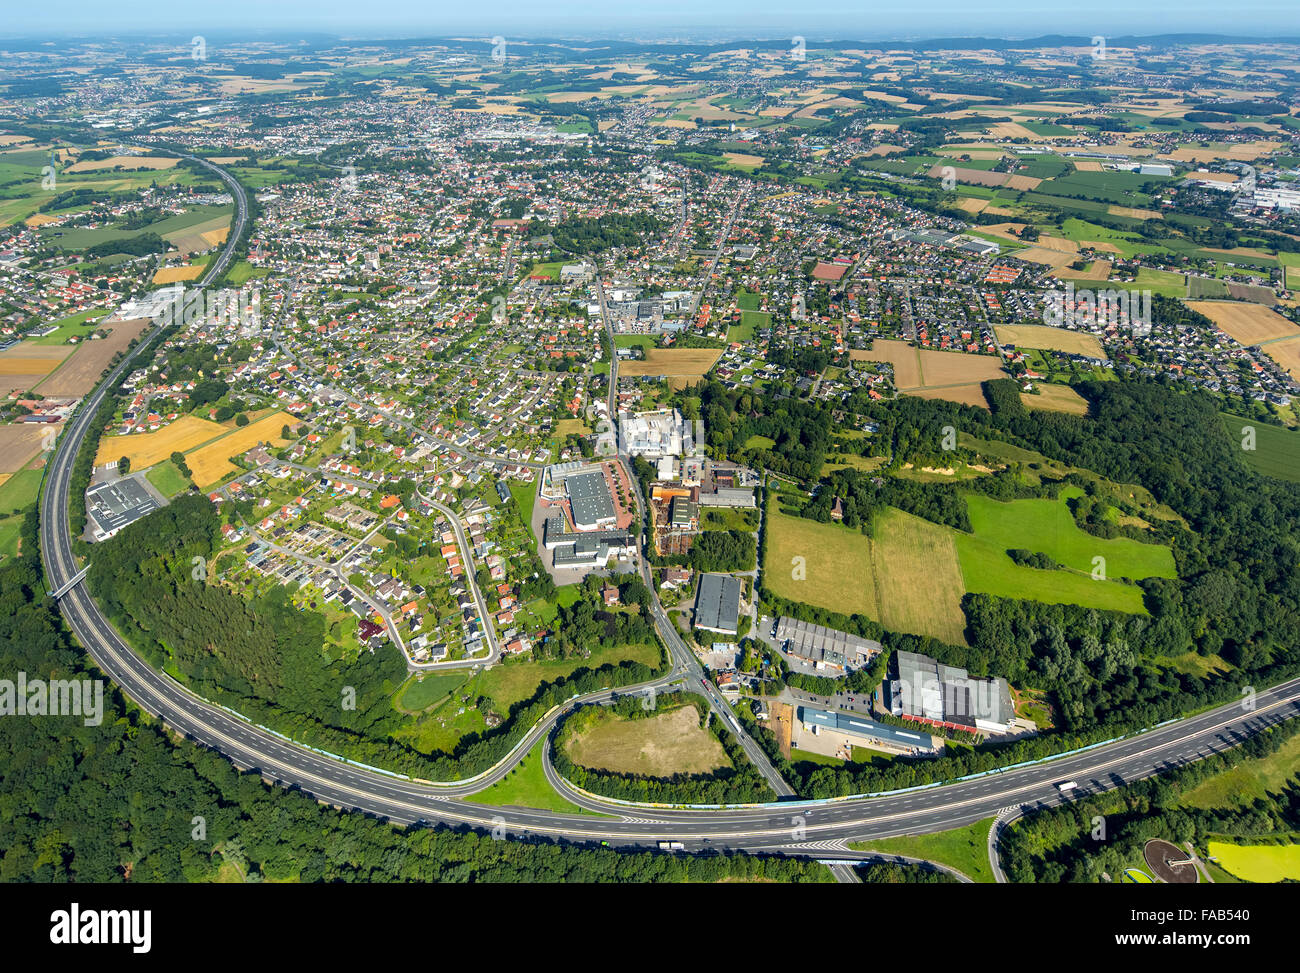 Aerial view, A30, bow with a southerly city, Bünde, East Westphalia, North Rhine-Westphalia, Germany, Europe, - Stock Image